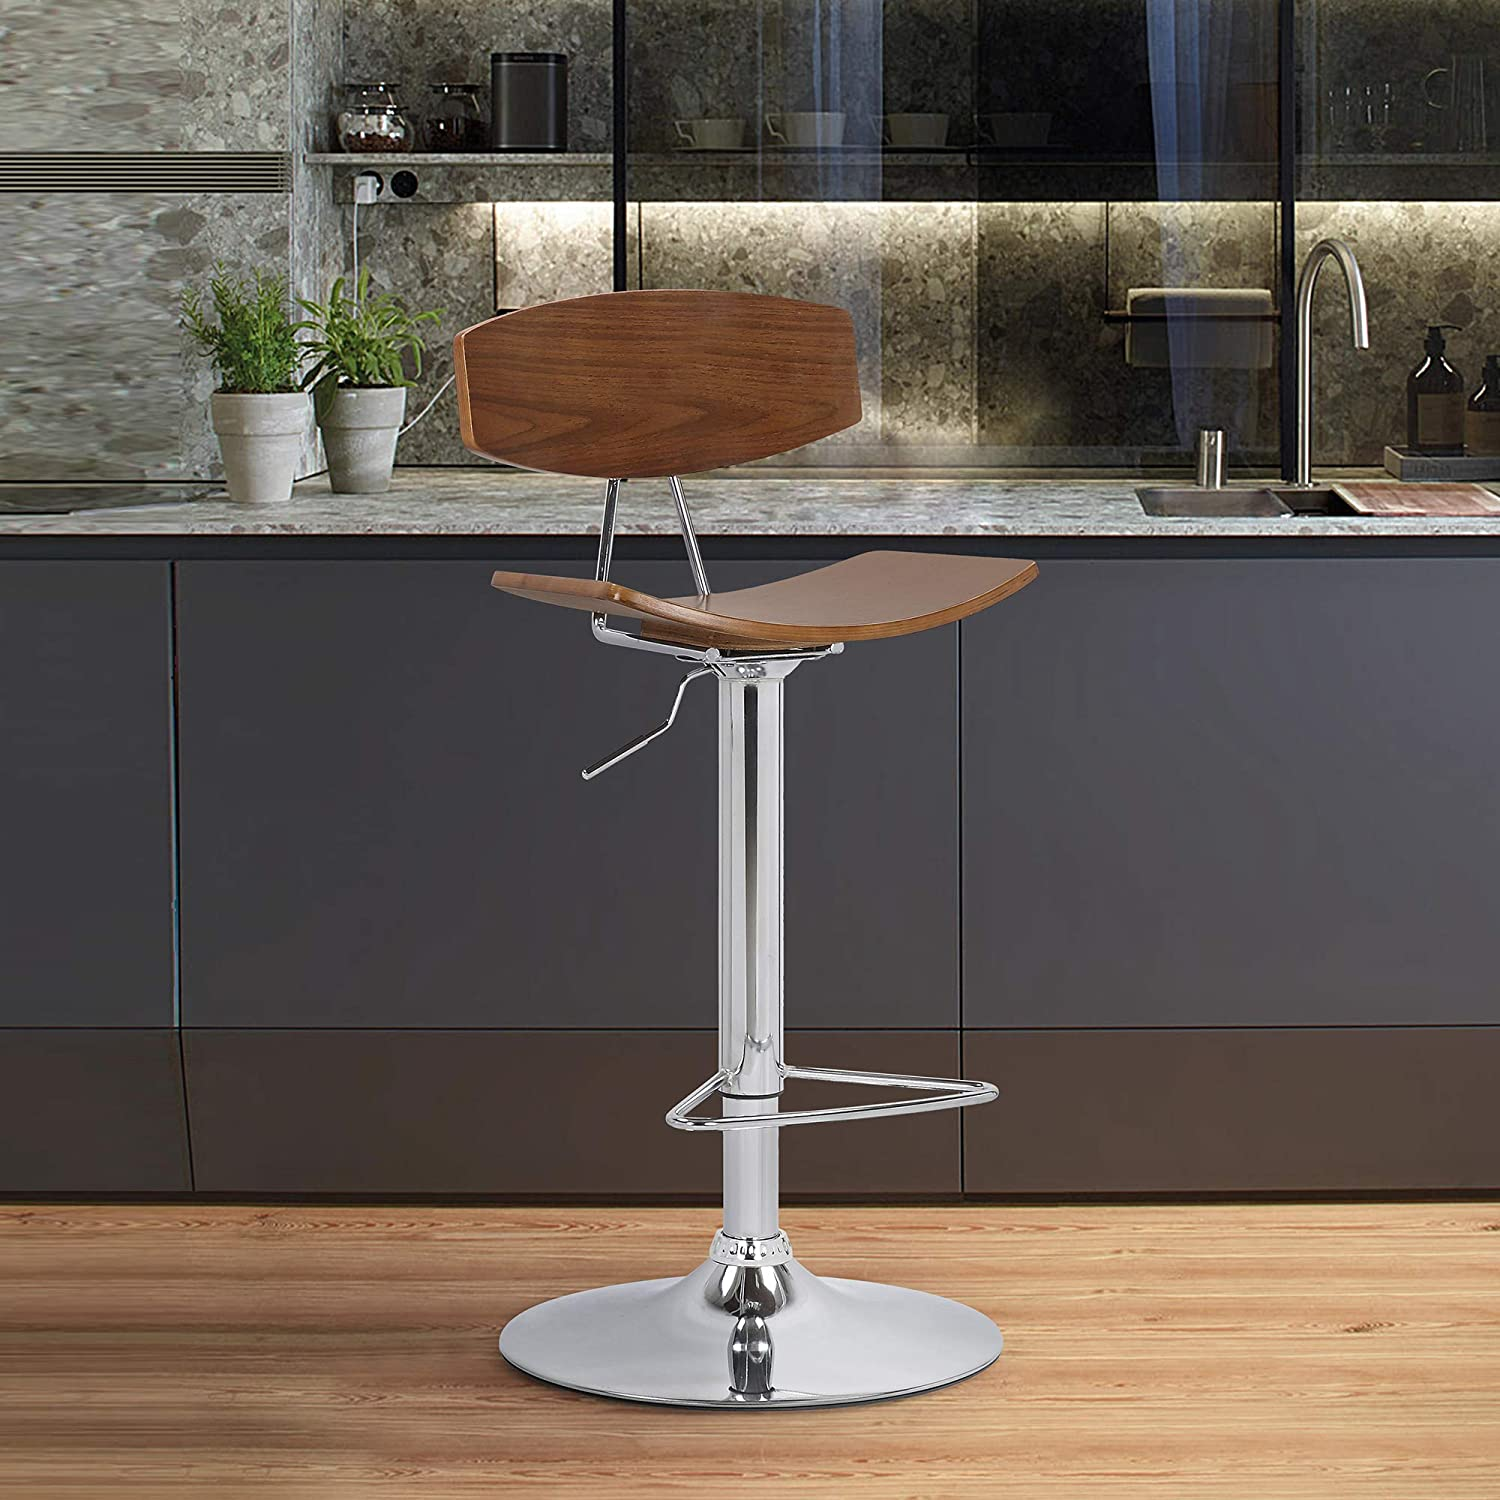 Armen Living Jett Adjustable Walnut and Chrome Adjustable Bar and Counter Height Stool, Adjustable heigh